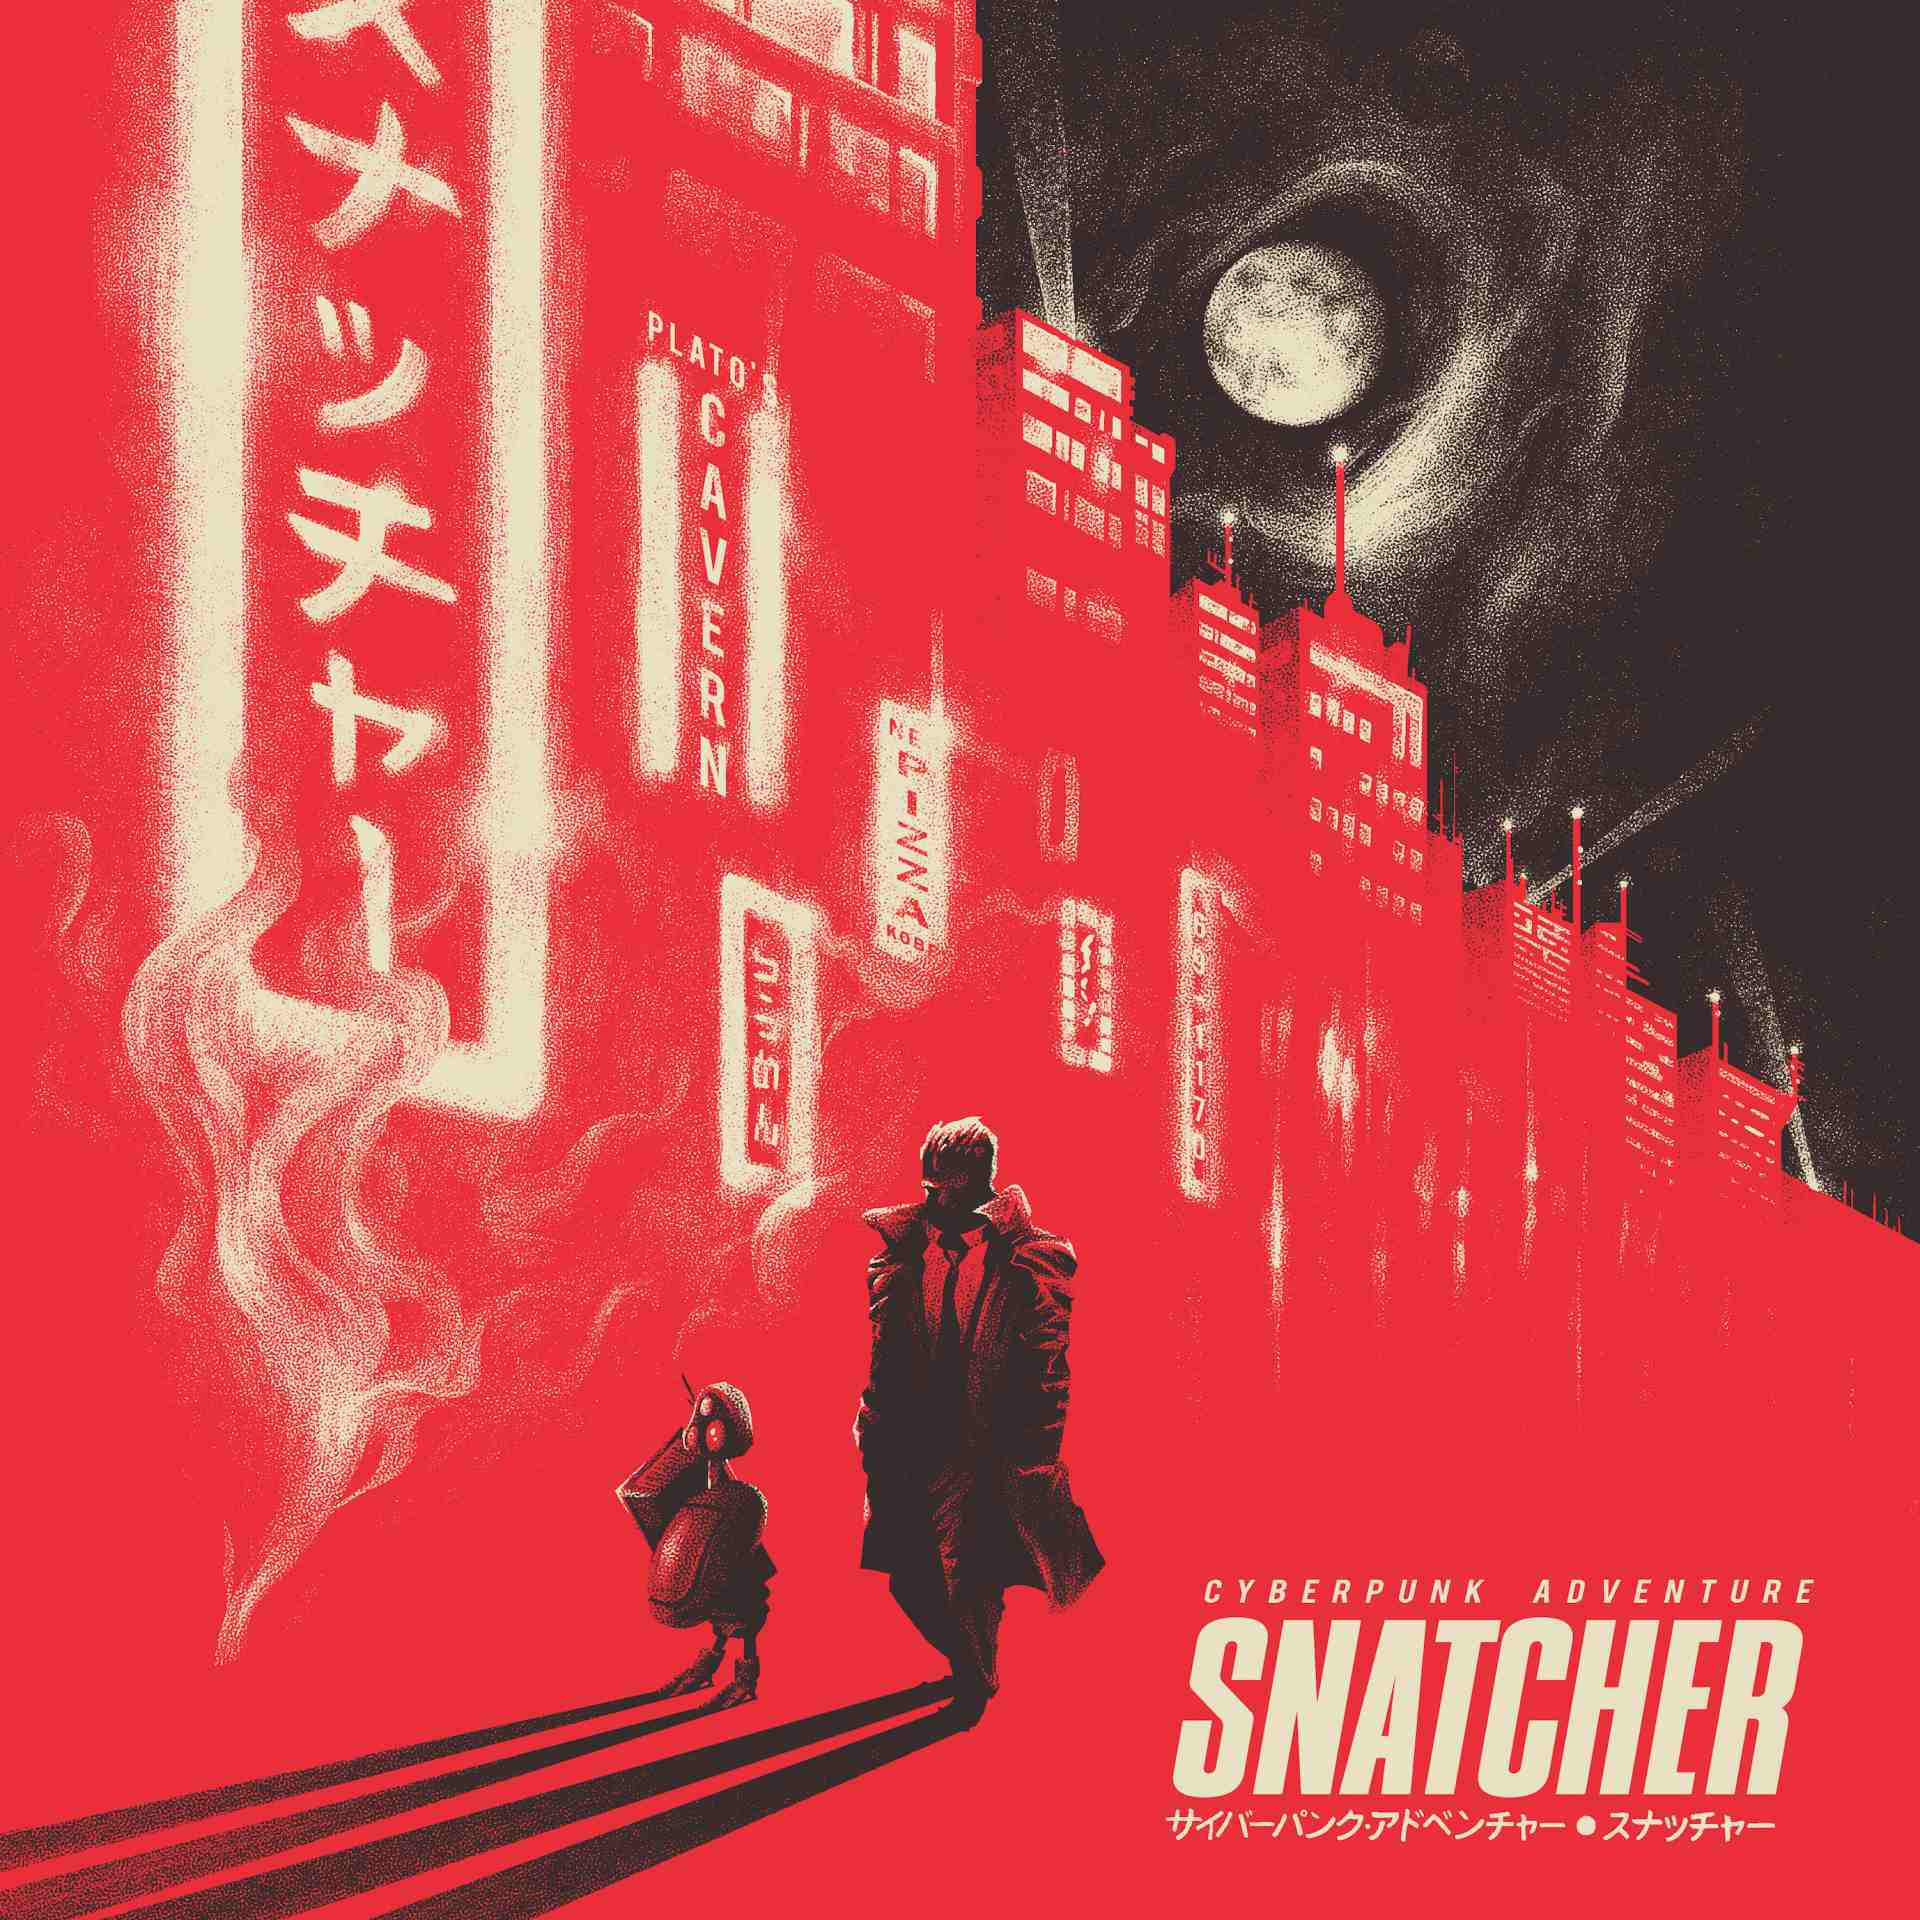 Snatcher Soundtrack Being Released By Ship To Shore